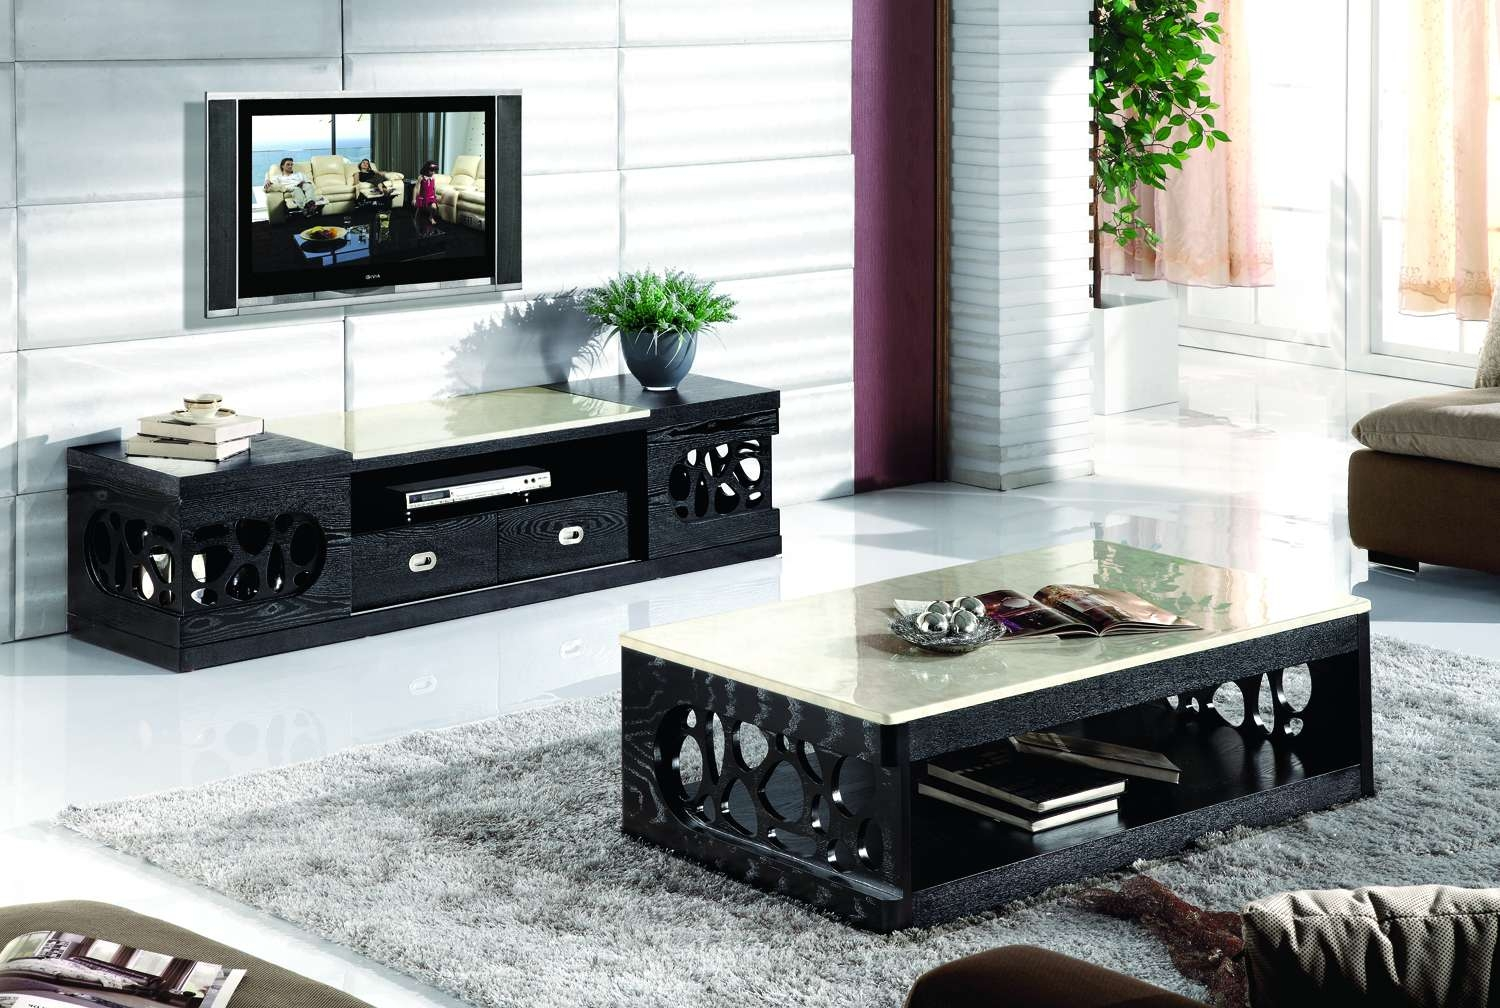 Displaying Gallery of Tv Stands Coffee Table Sets View 8 of 20 Photos